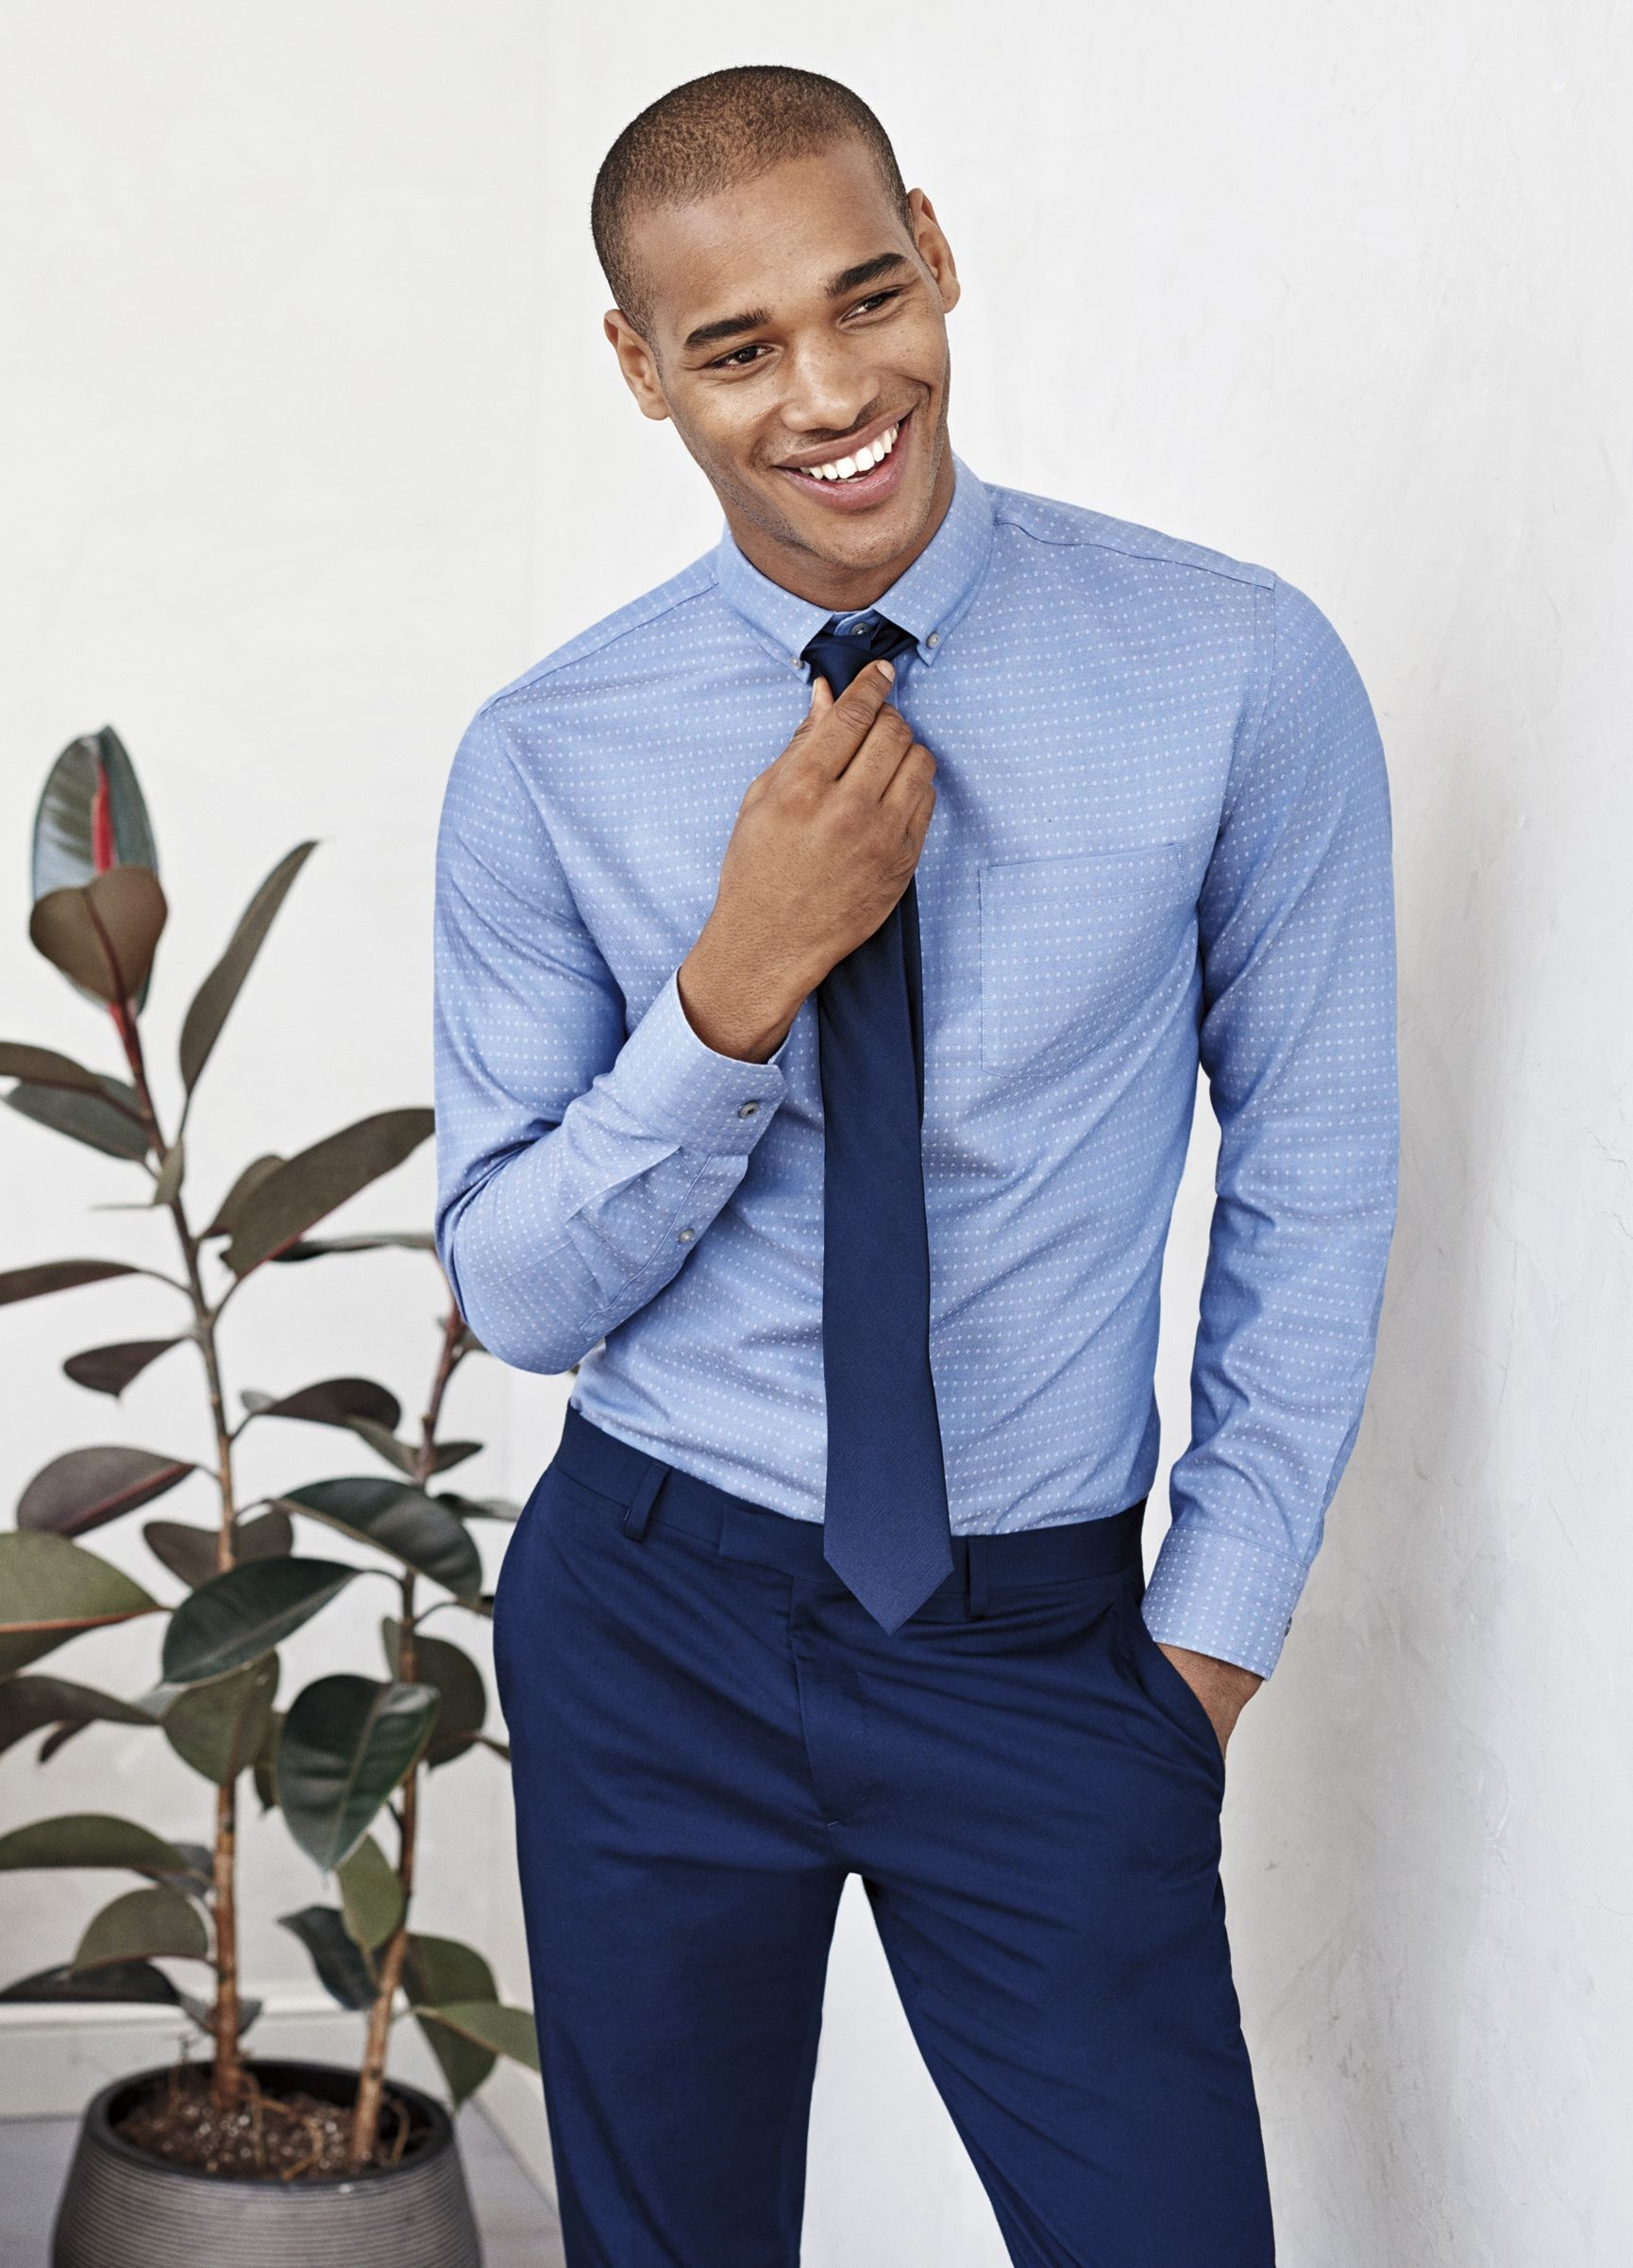 Discover The Softest Cotton Dress Shirt To Give Your Look The